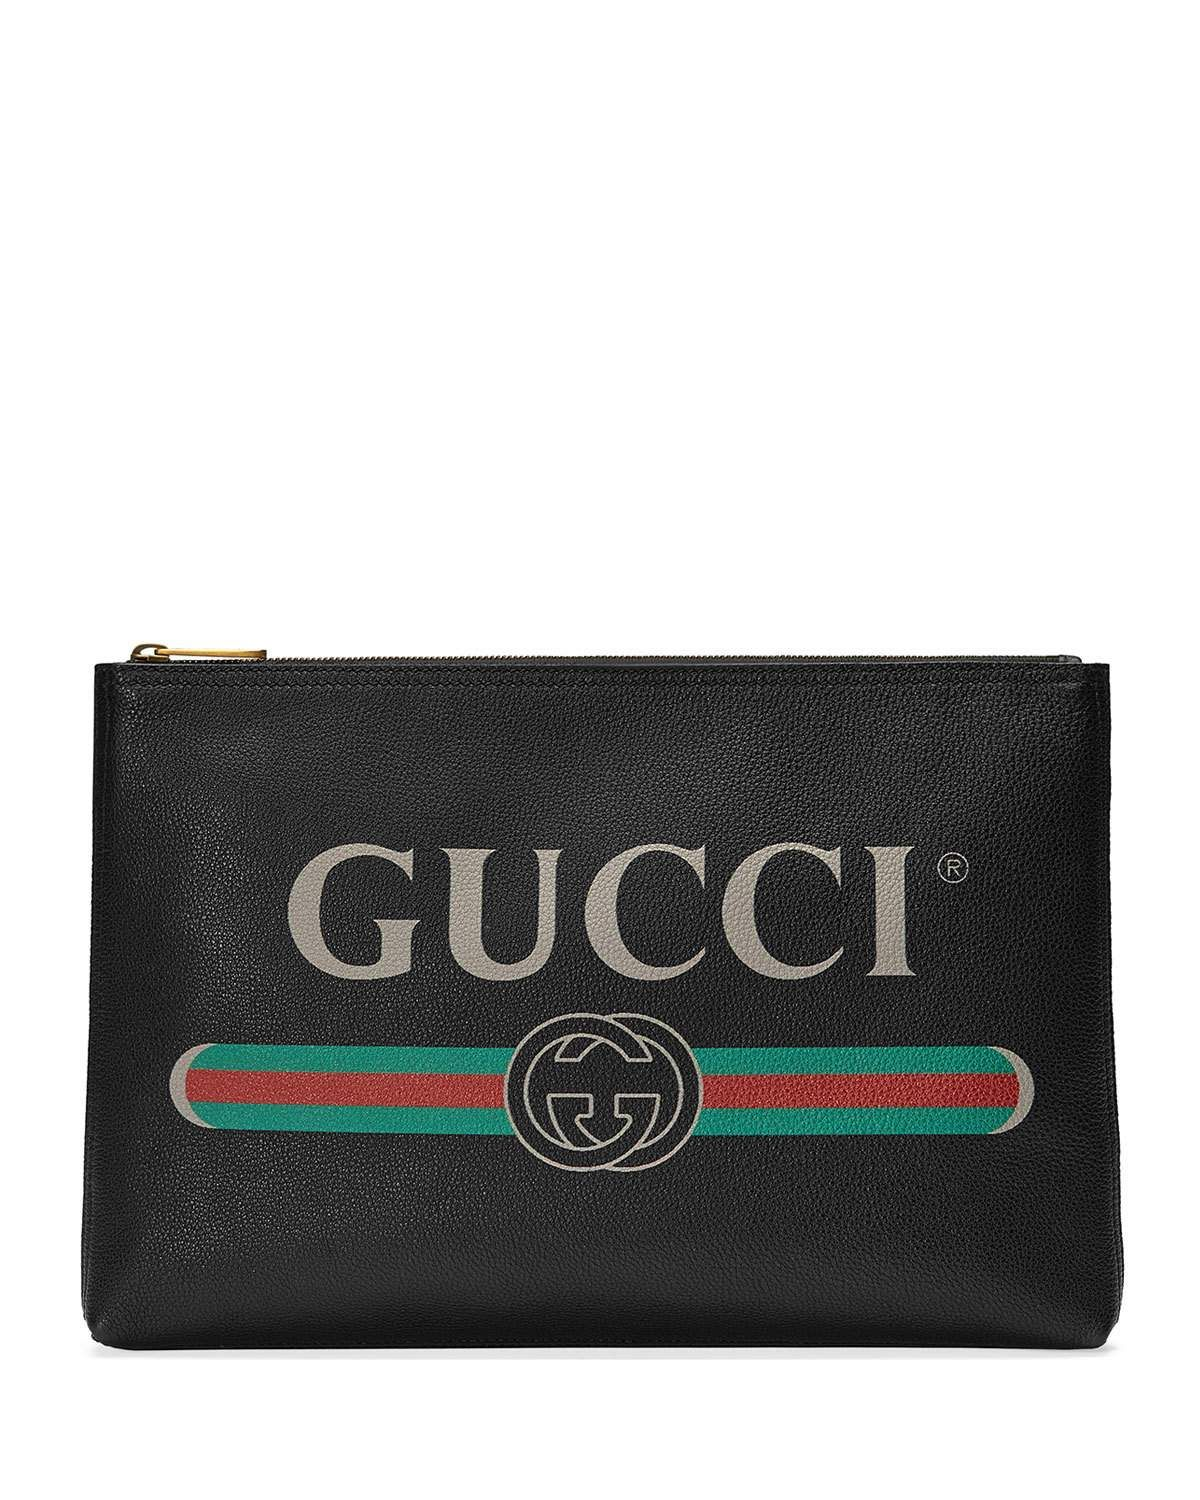 b94a9945463 Gucci Men's Large Logo Pouch Bag in 2019 | Life + Style | Gucci ...